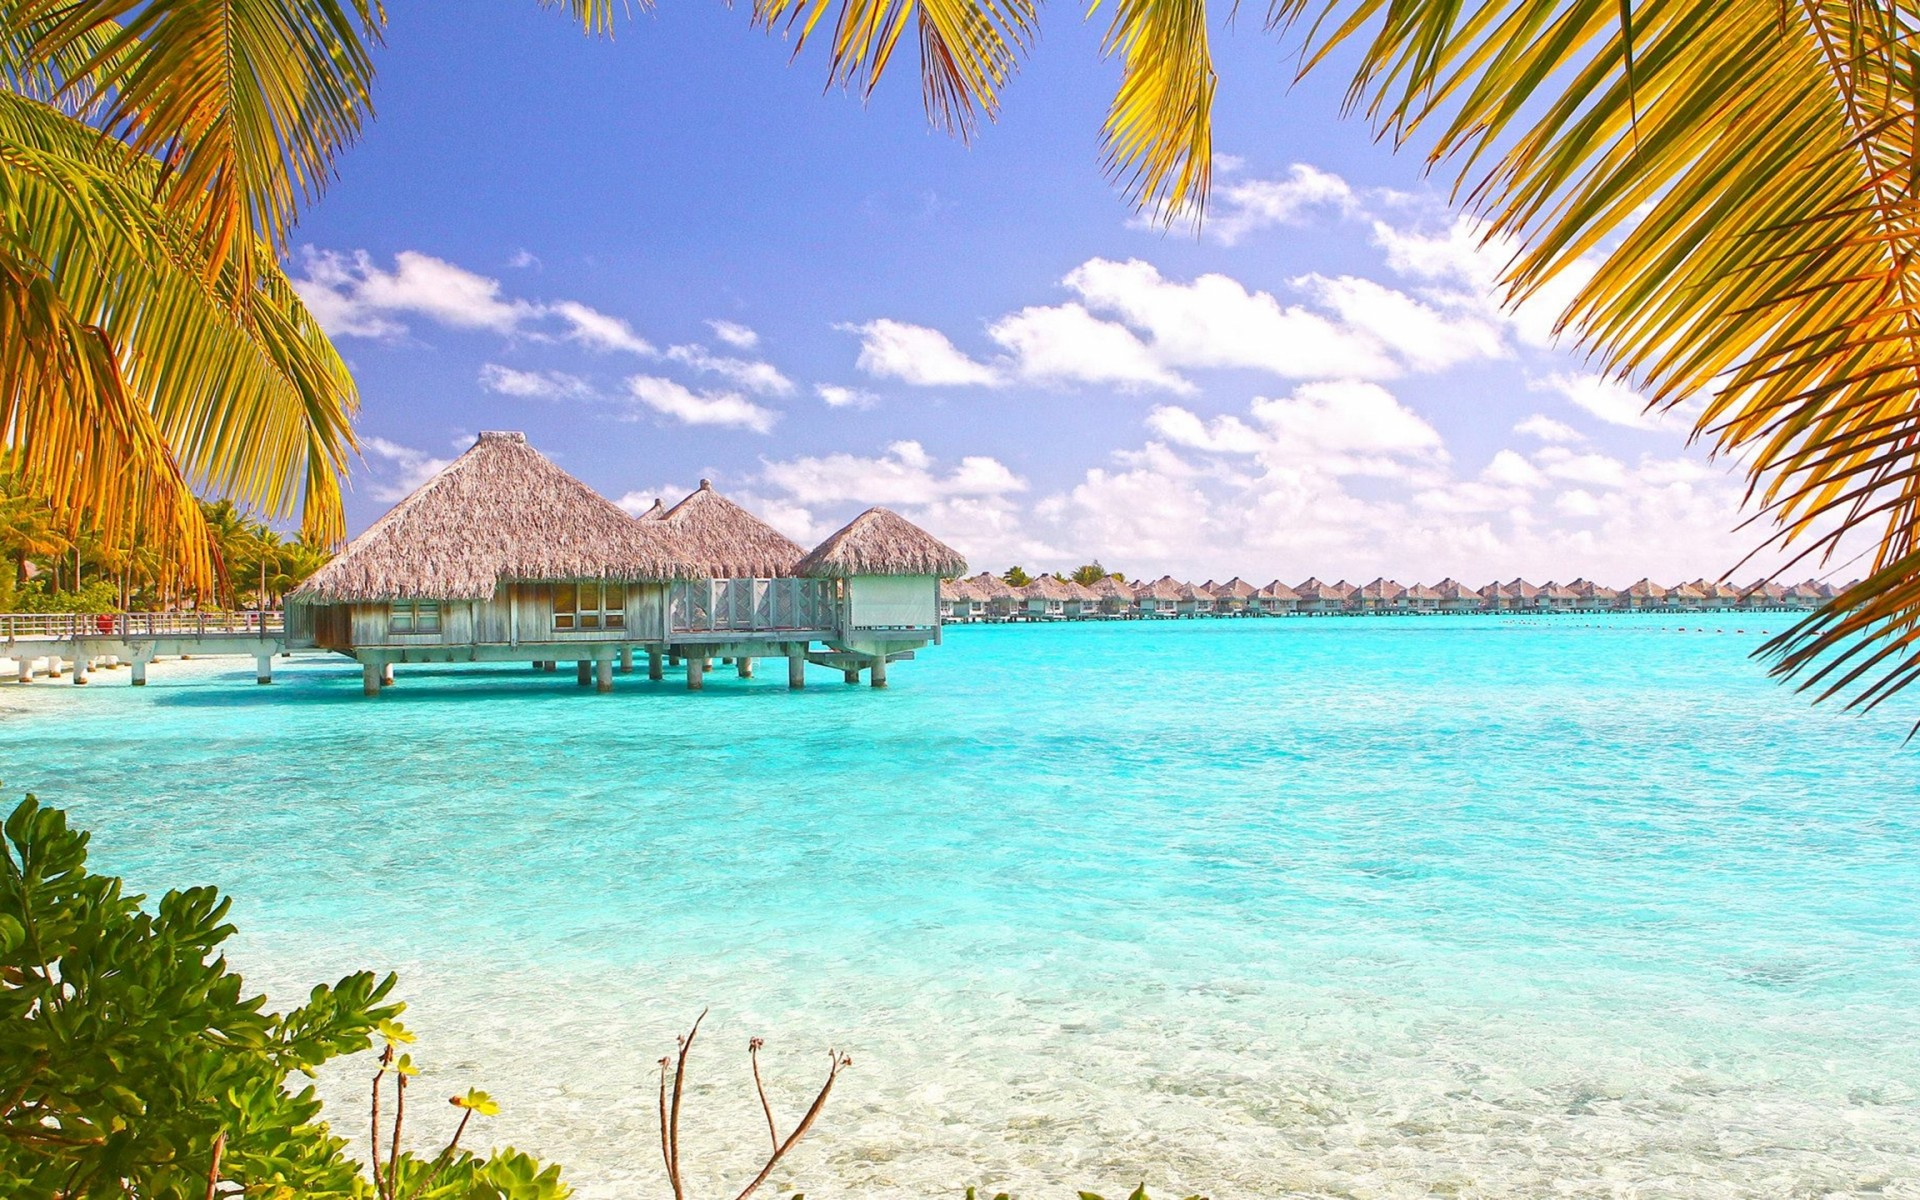 Tropical Beach Bora Bora Polynesia Desktop Wallpaper 1920x1200